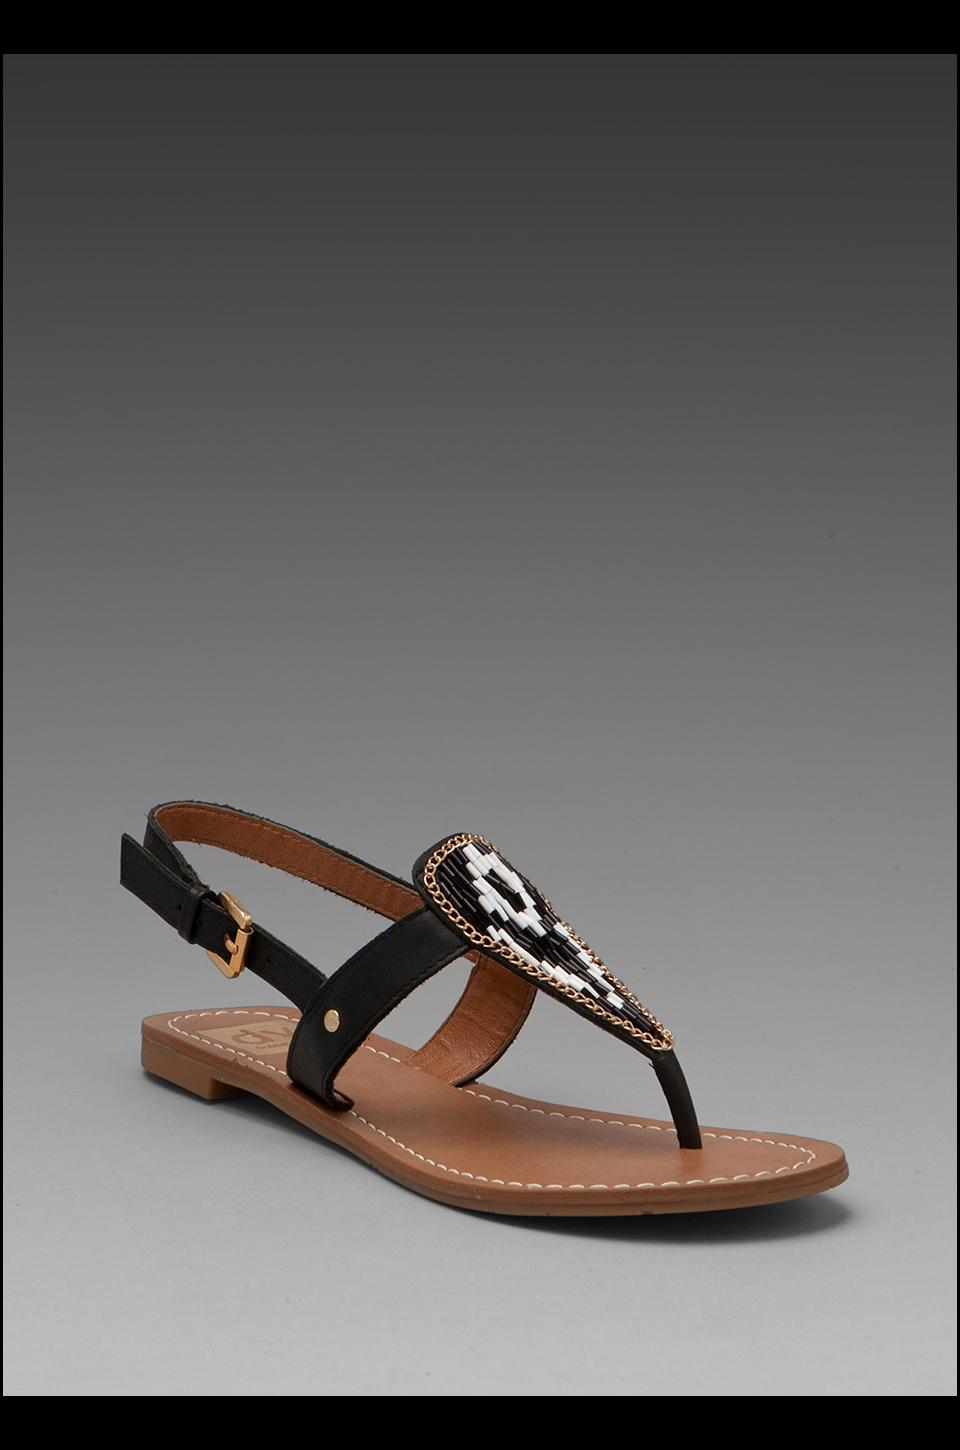 Dolce Vita Domino Sandal in Black